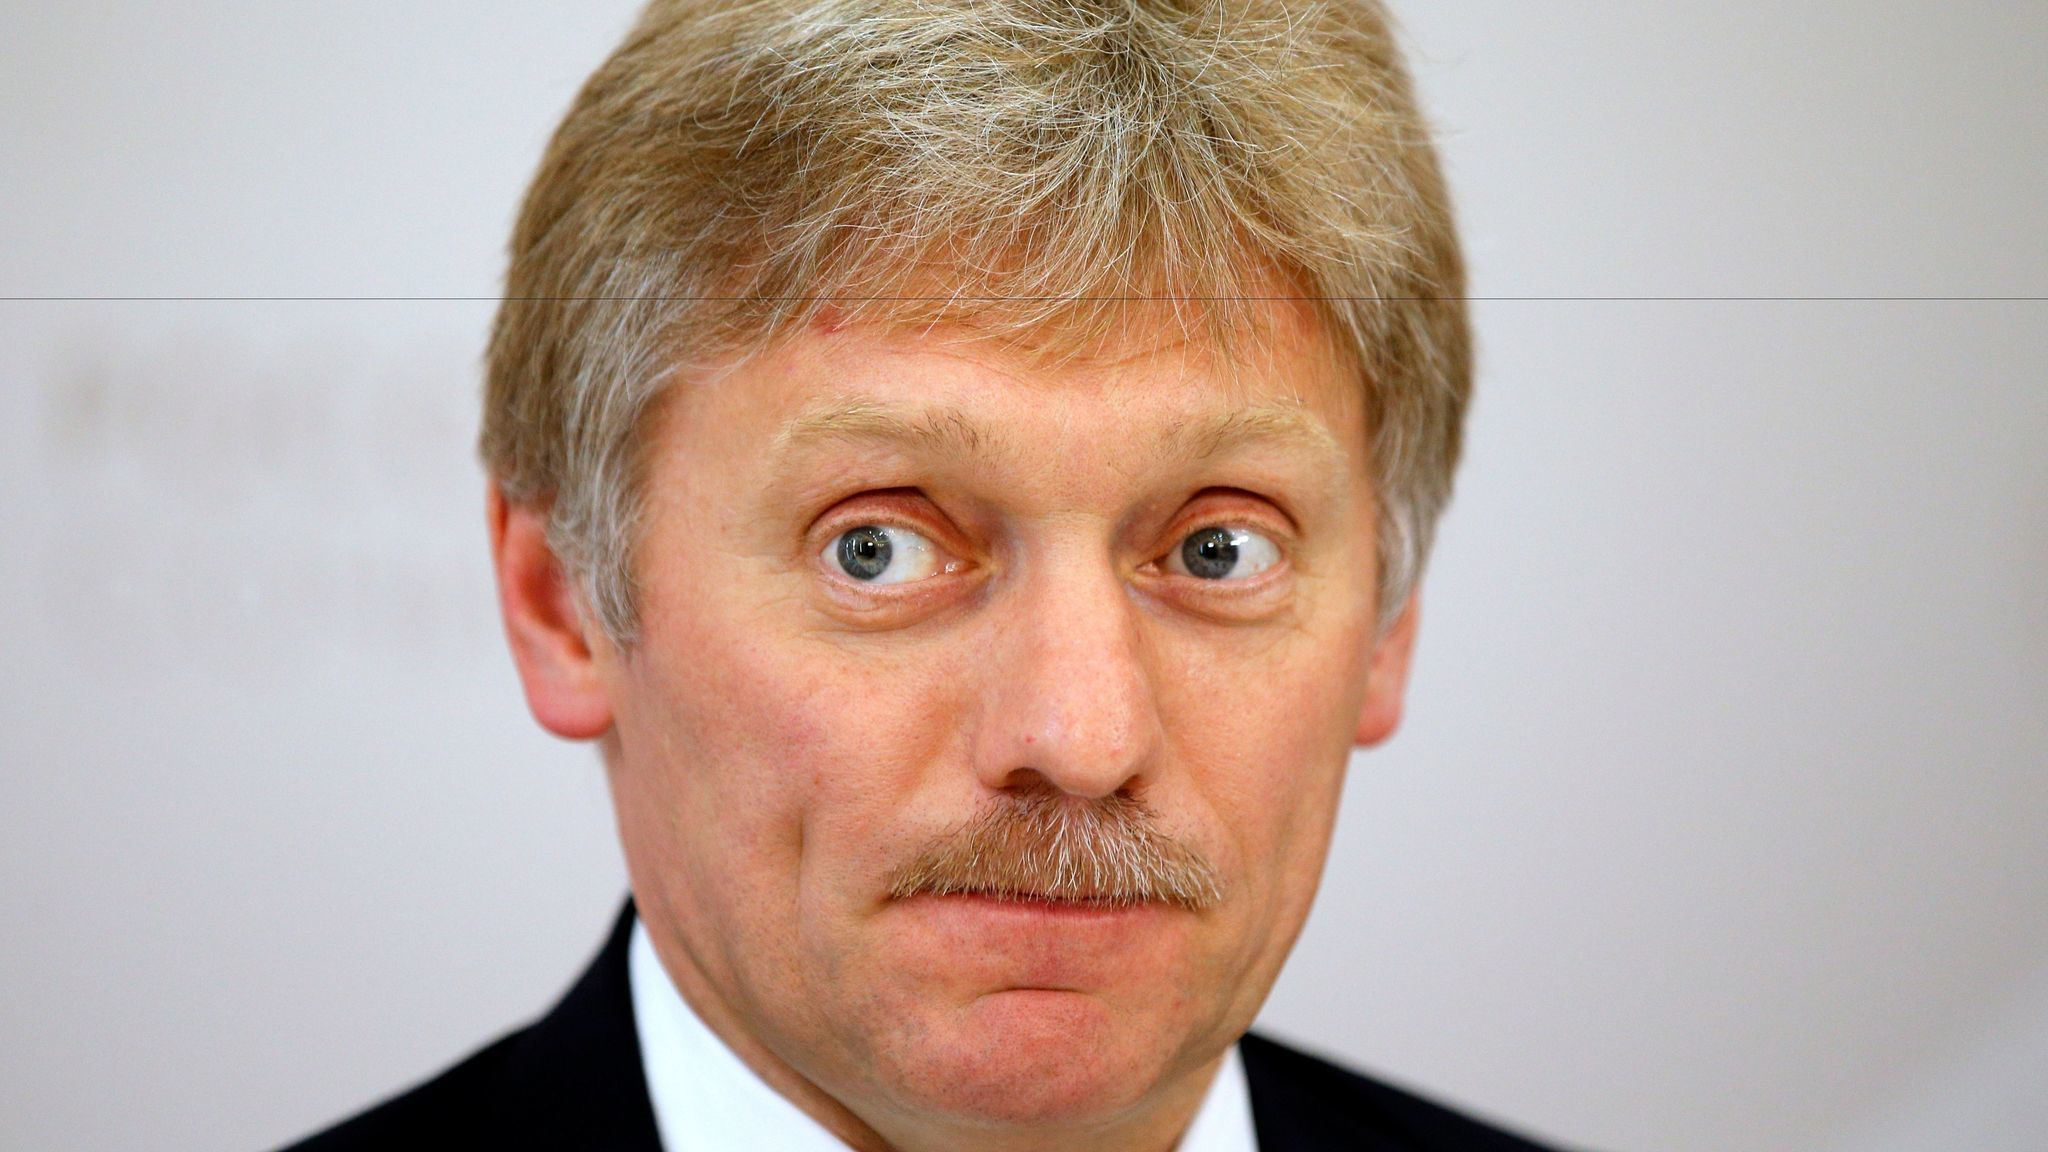 Kremlin says purported dossier on Trump is just 'pulp fiction'